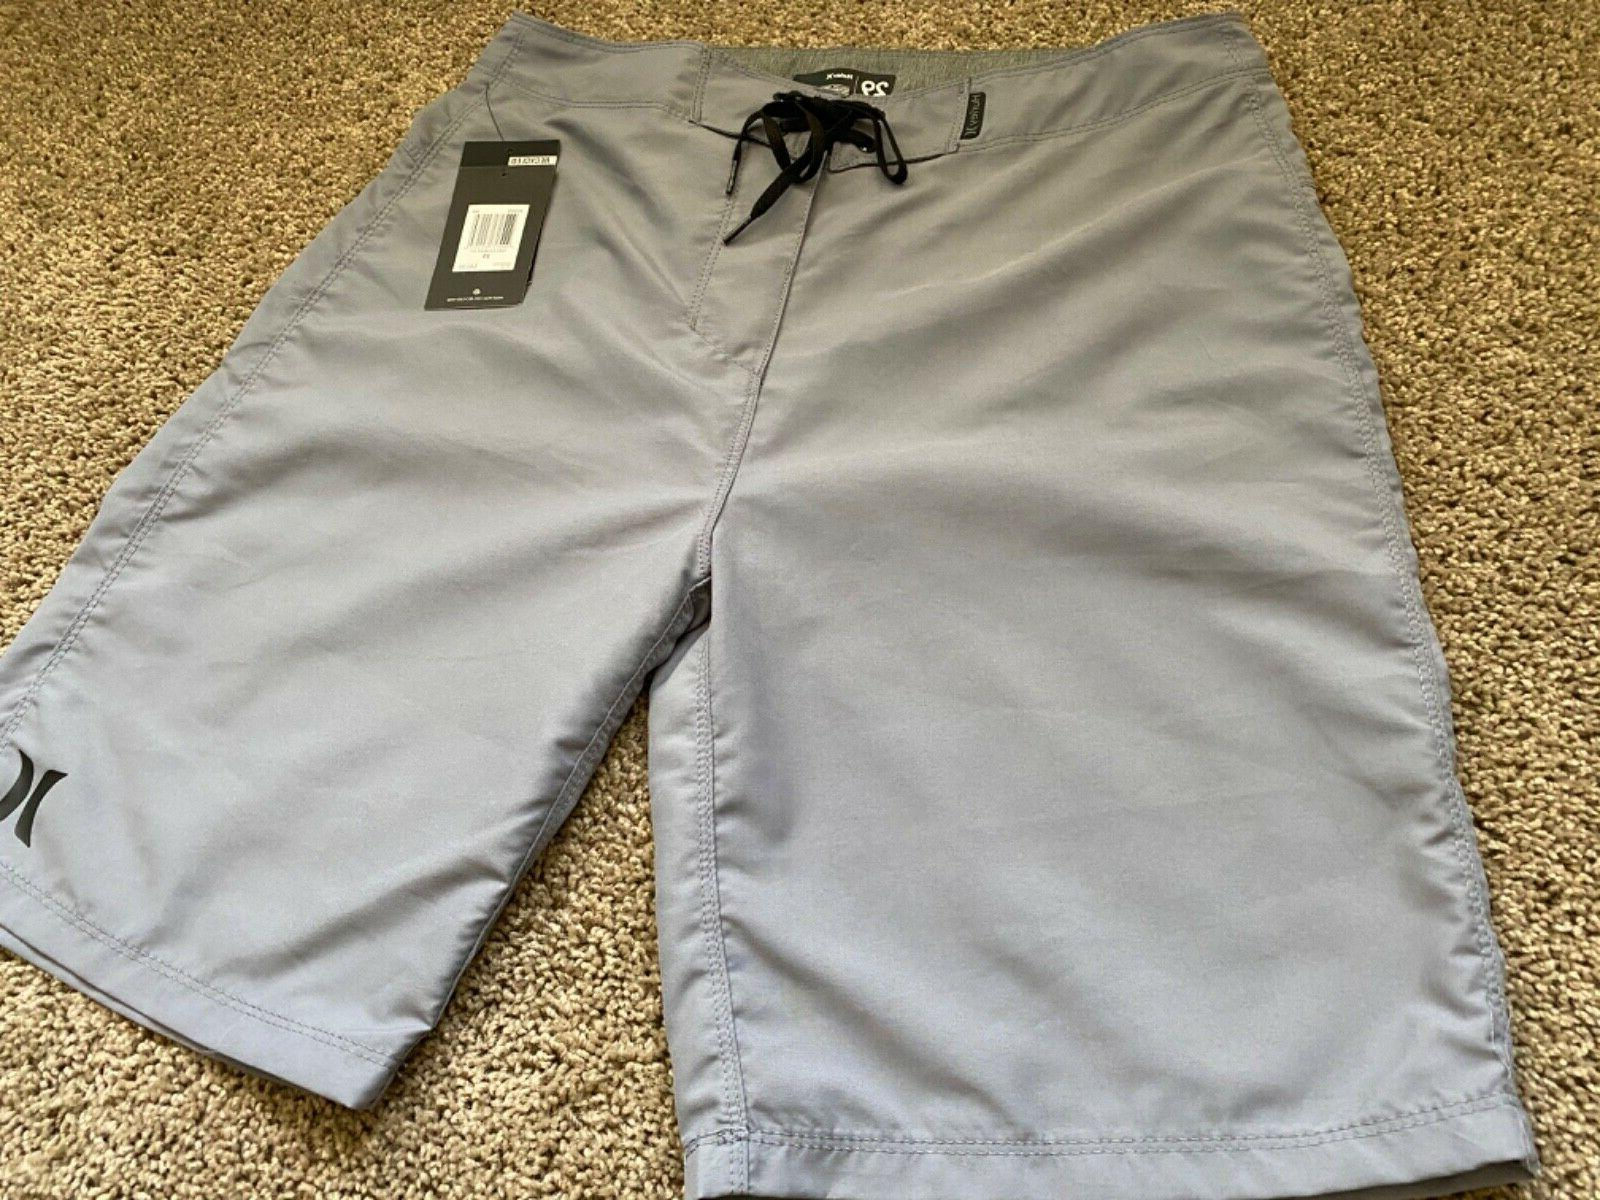 BRAND HURLEY MENS BOARD SHORTS AND SIZE 29 30 31 38 21